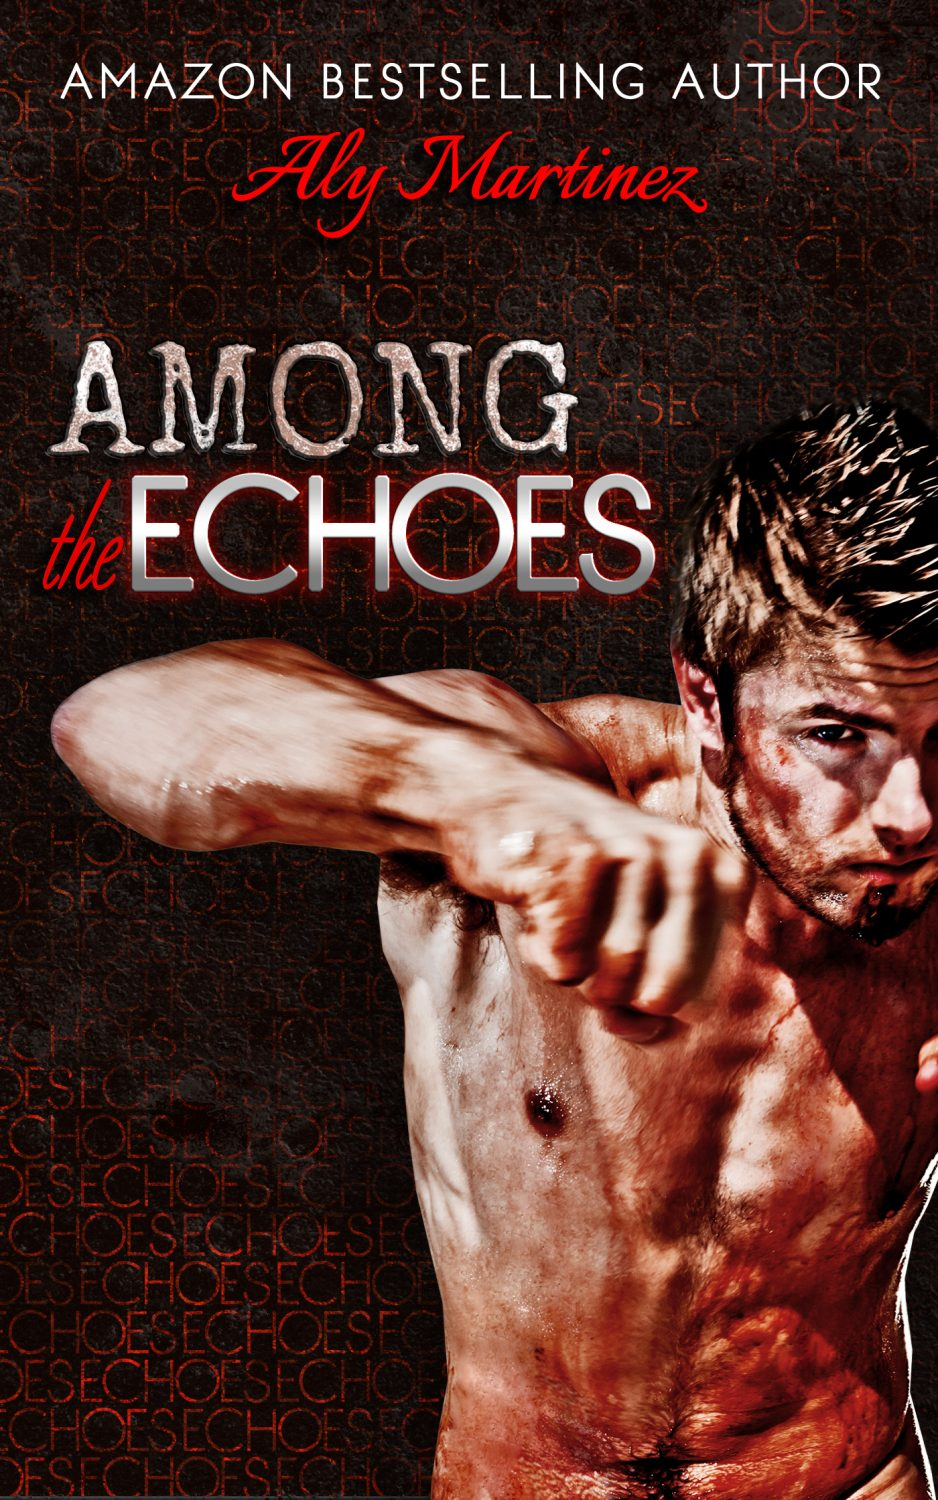 In Review: Among the Echoes (Wrecked & Ruined #2.5) by Aly Martinez